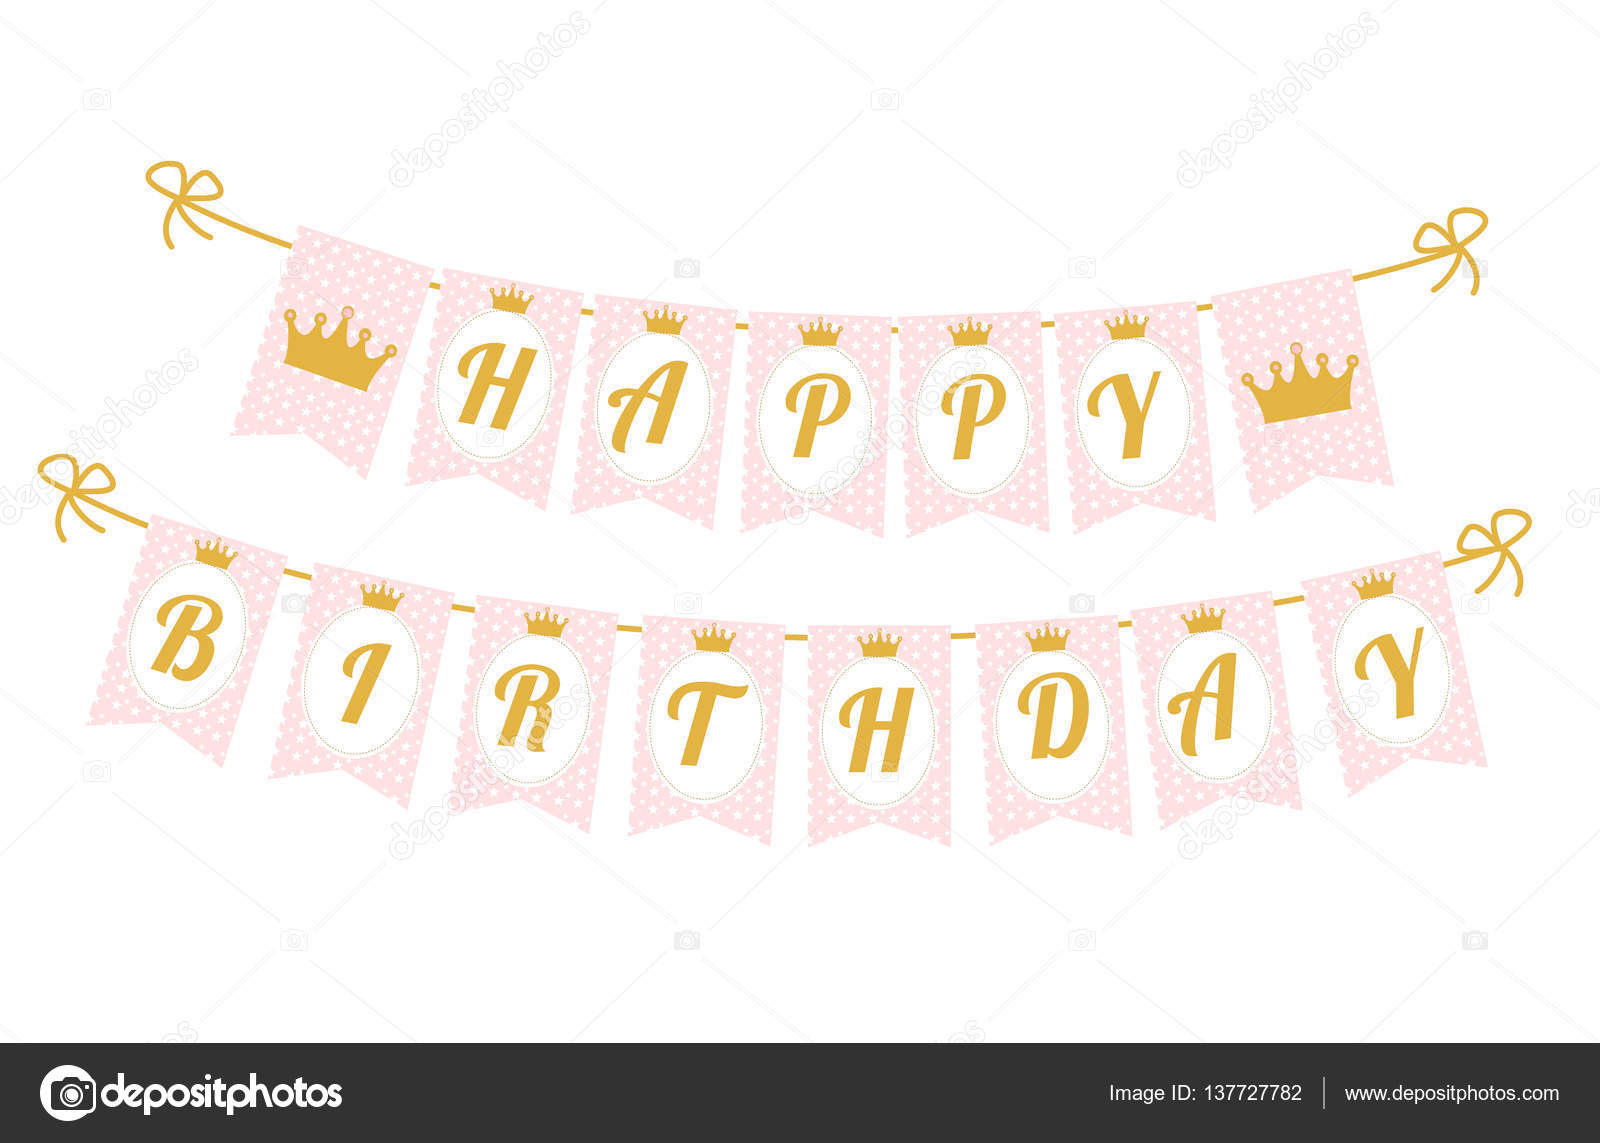 cute pennant banner as flags with letters happy birthday in princess